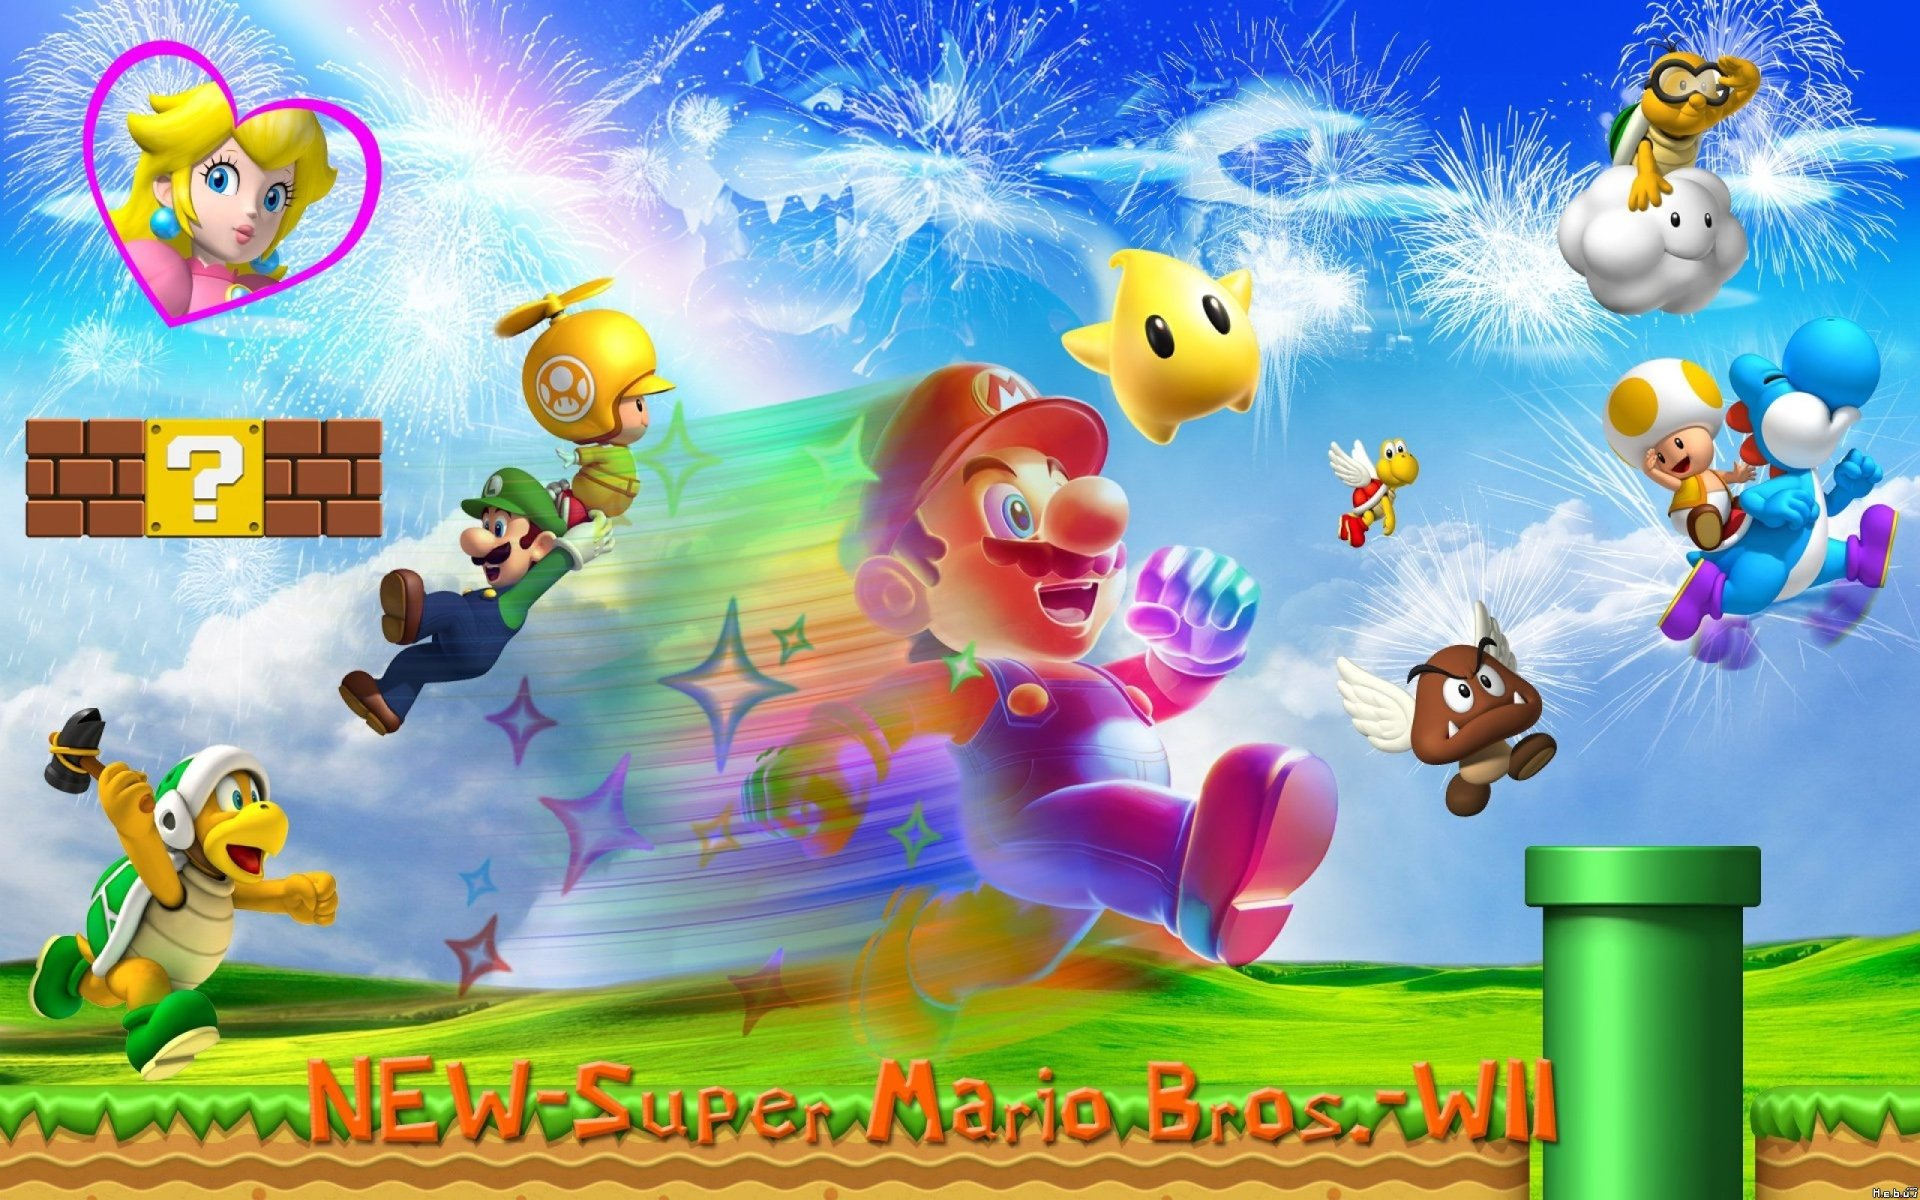 Video Game - Super Mario Bros.  Koopa Troopa Mario Goomba Yoshi Luigi Toad (Mario) Princesse Peach Bowser Bakgrund